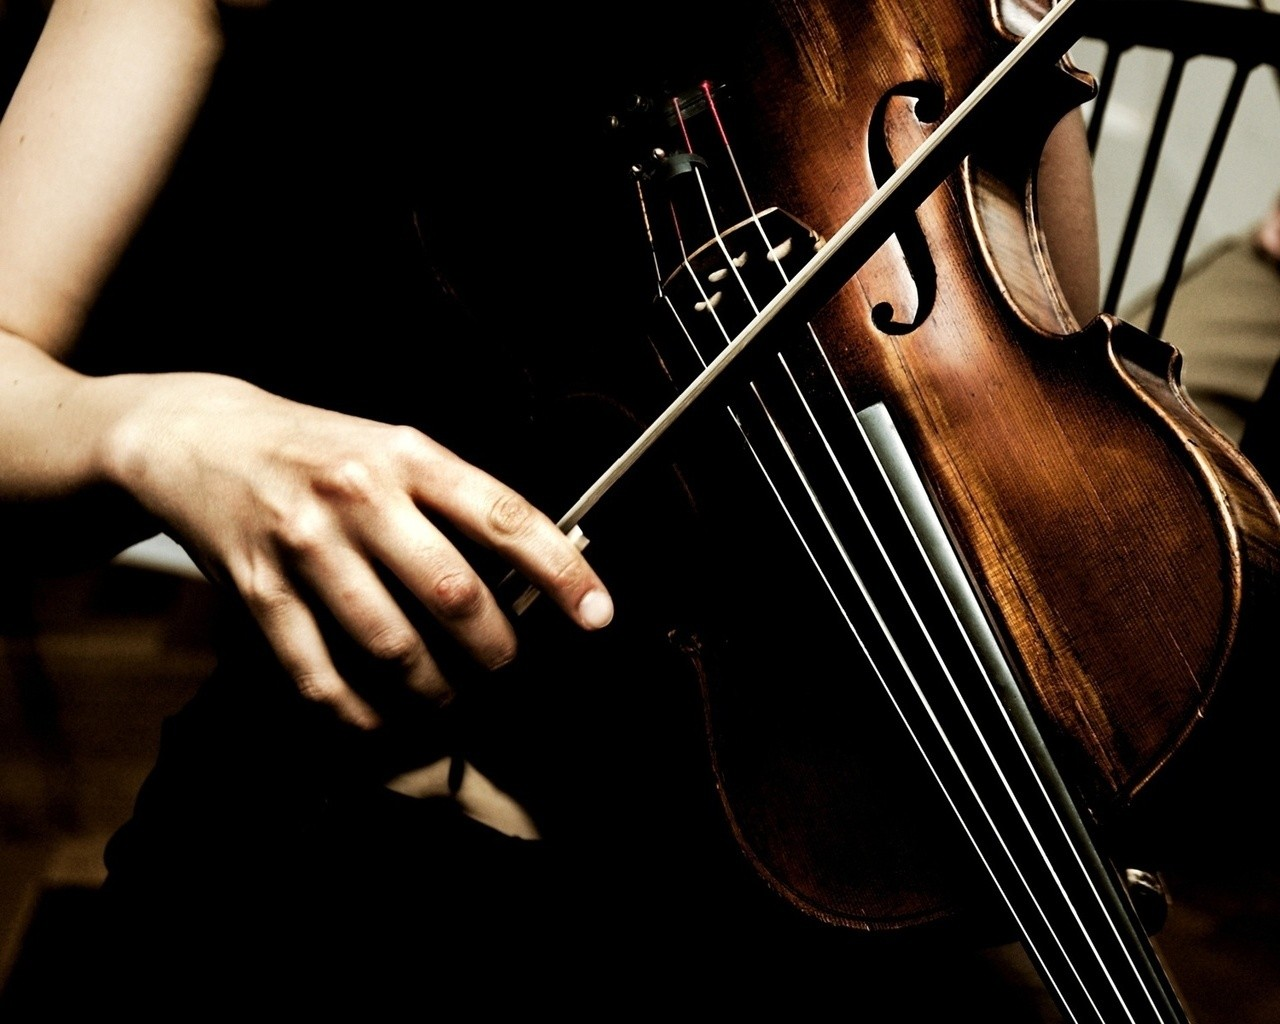 violin and music Find violin tracks, artists, and albums find the latest in violin music at lastfm.